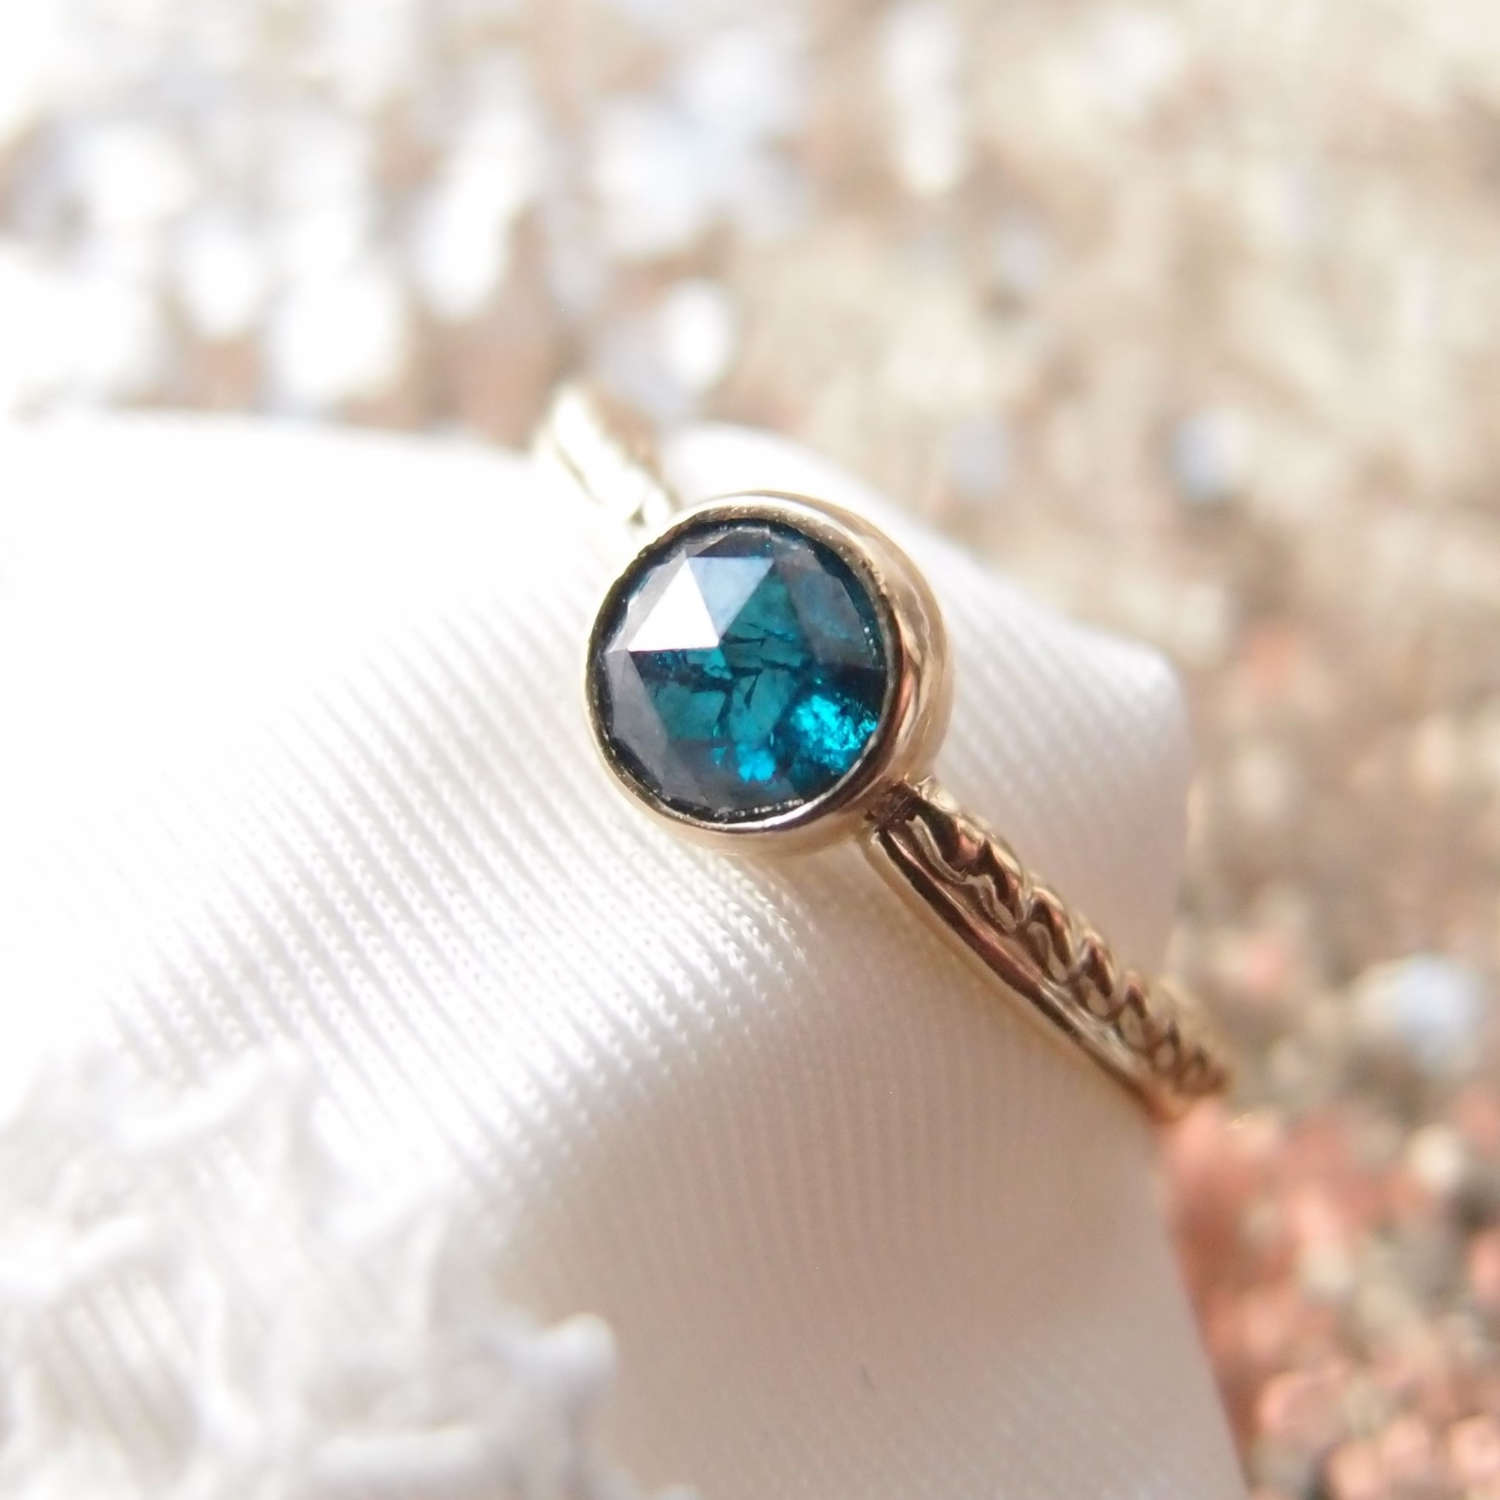 Dainty engagement ring with blue diamond